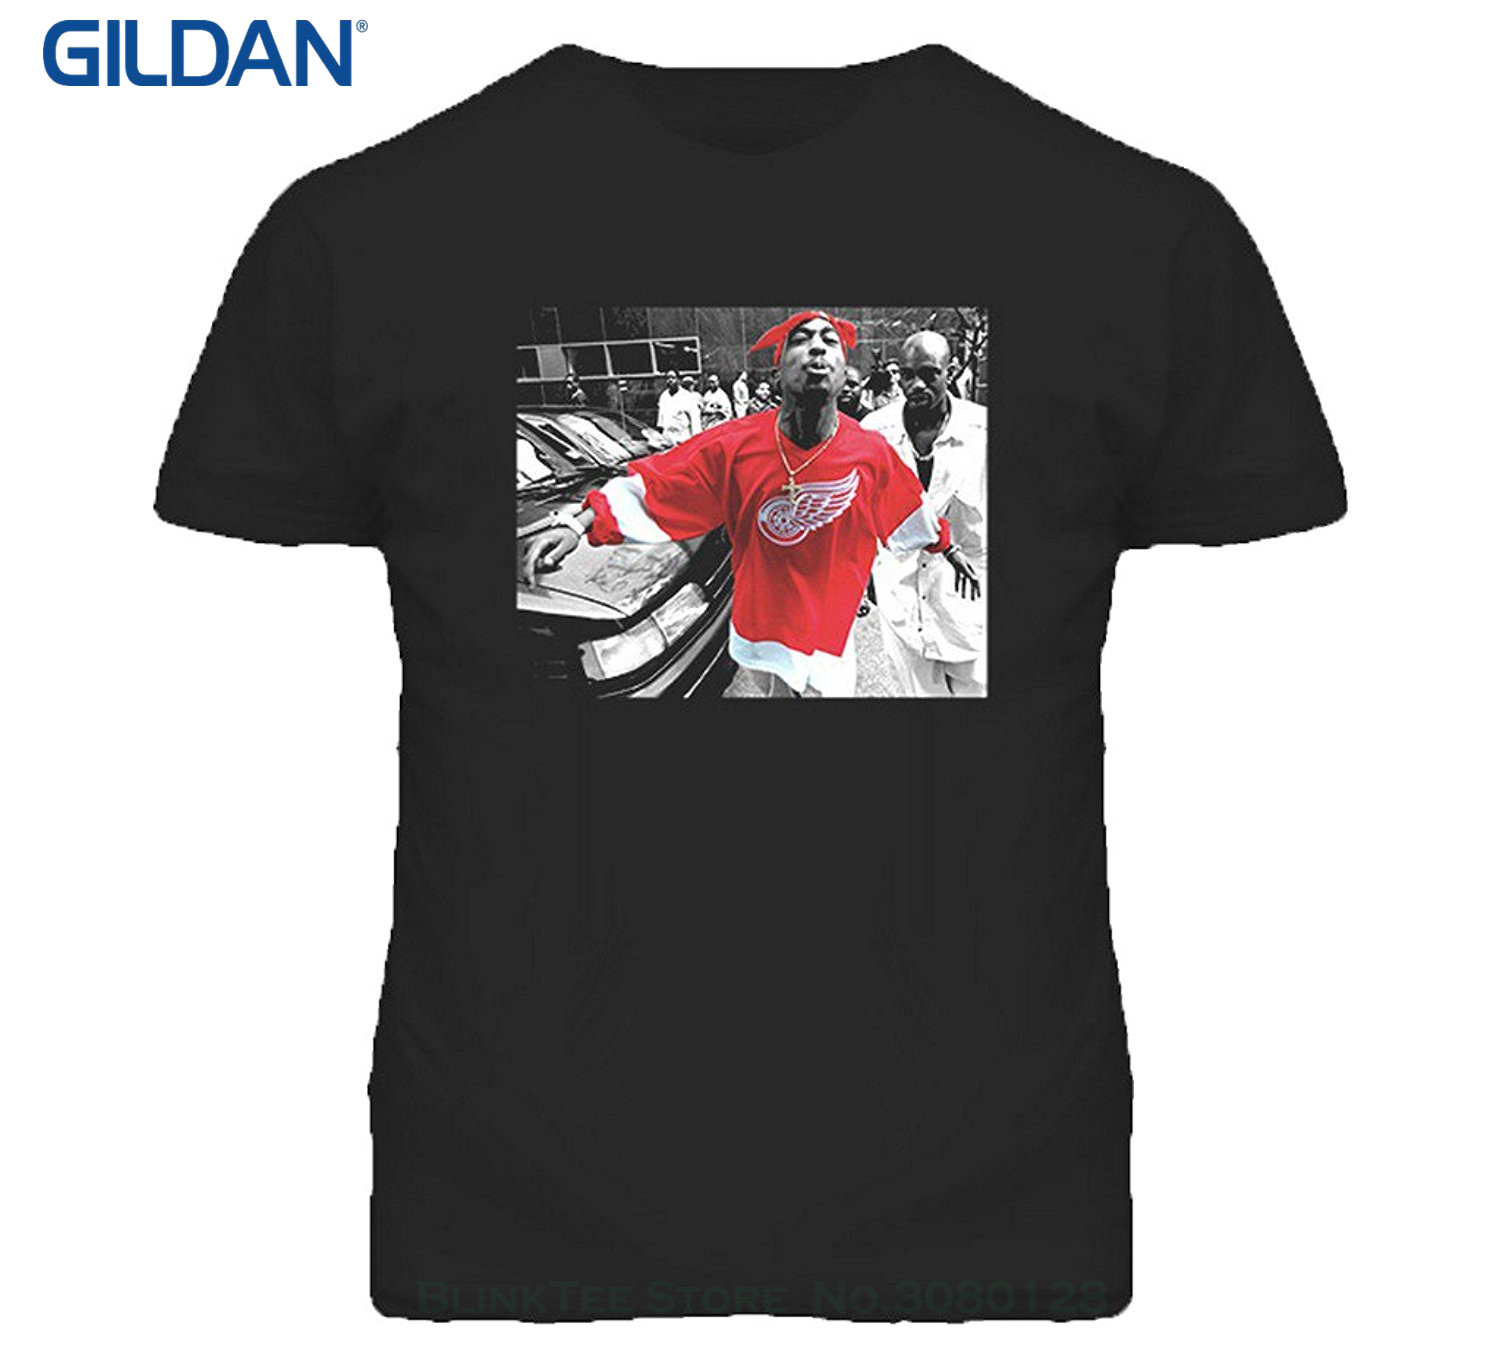 Worldstarhiphop Mobile App - Gildan fashion classic world star hiphop tupac shakur 2pac detroit spitting hip hop rap t shirt